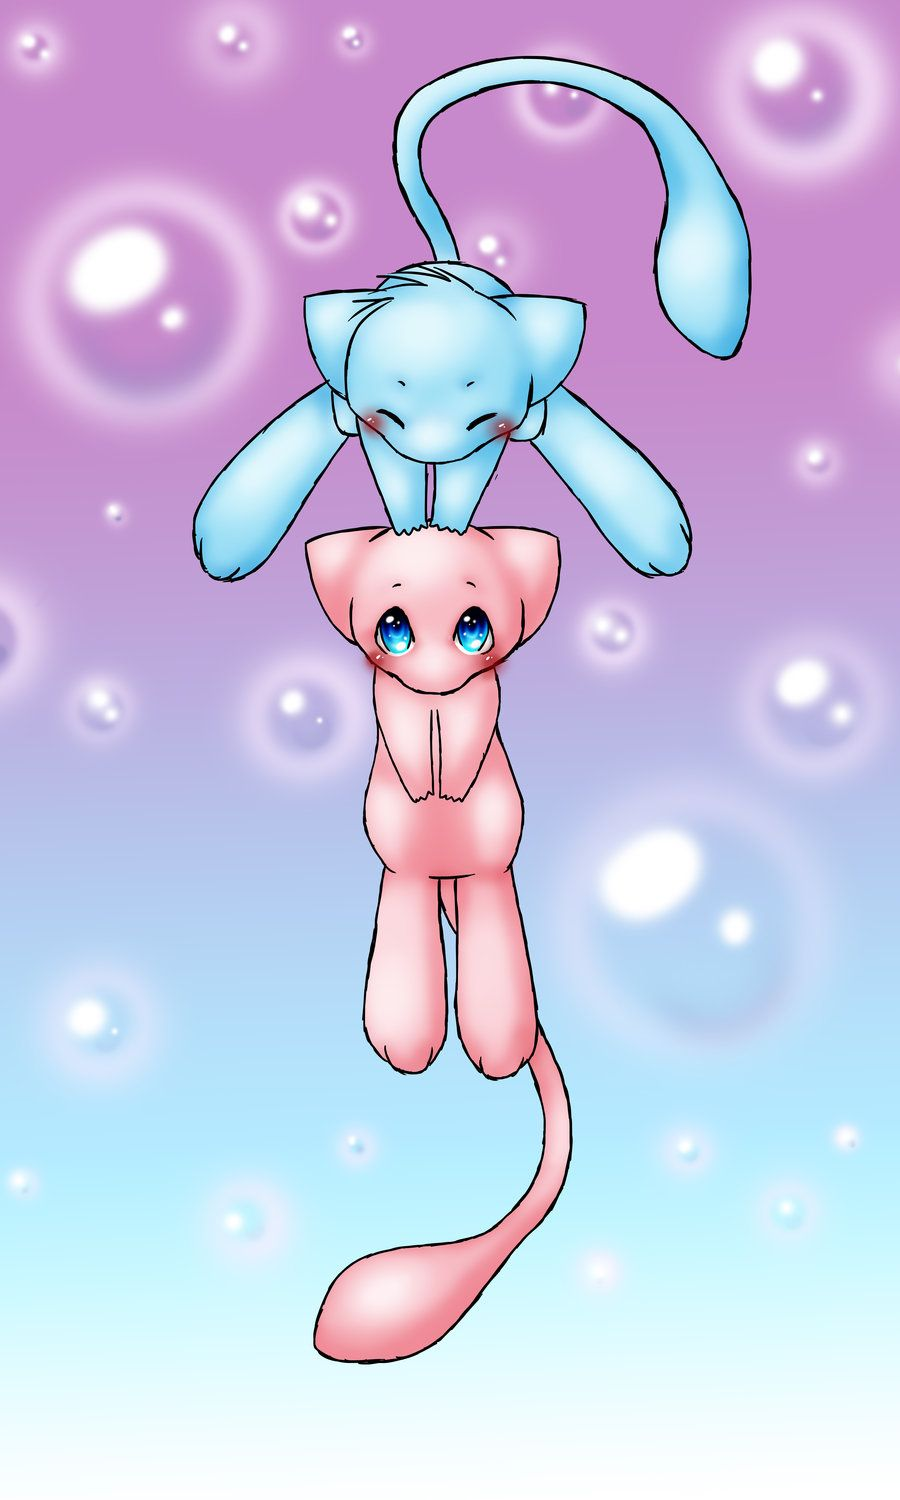 Mew (pokemon) images Mew Love! HD wallpaper and background photos …